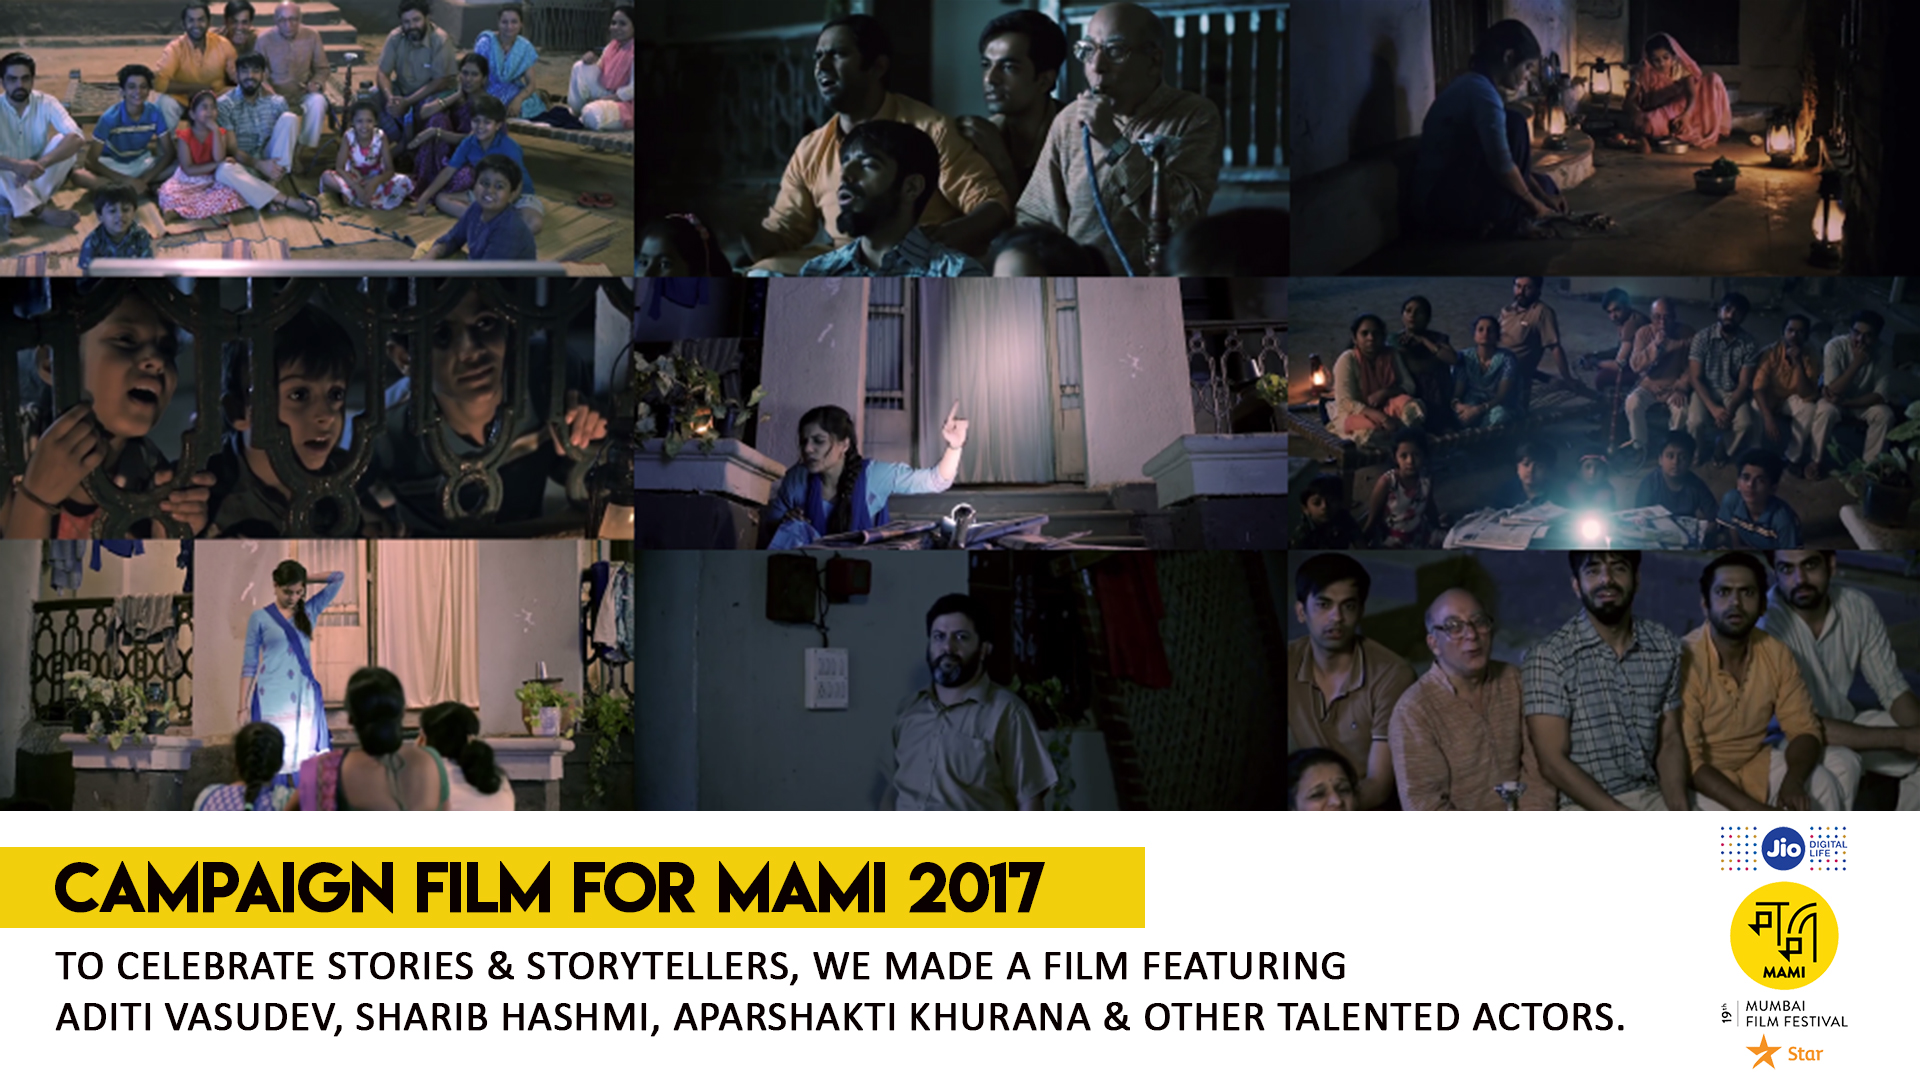 MAMI Campaign Film 2017 - What Works